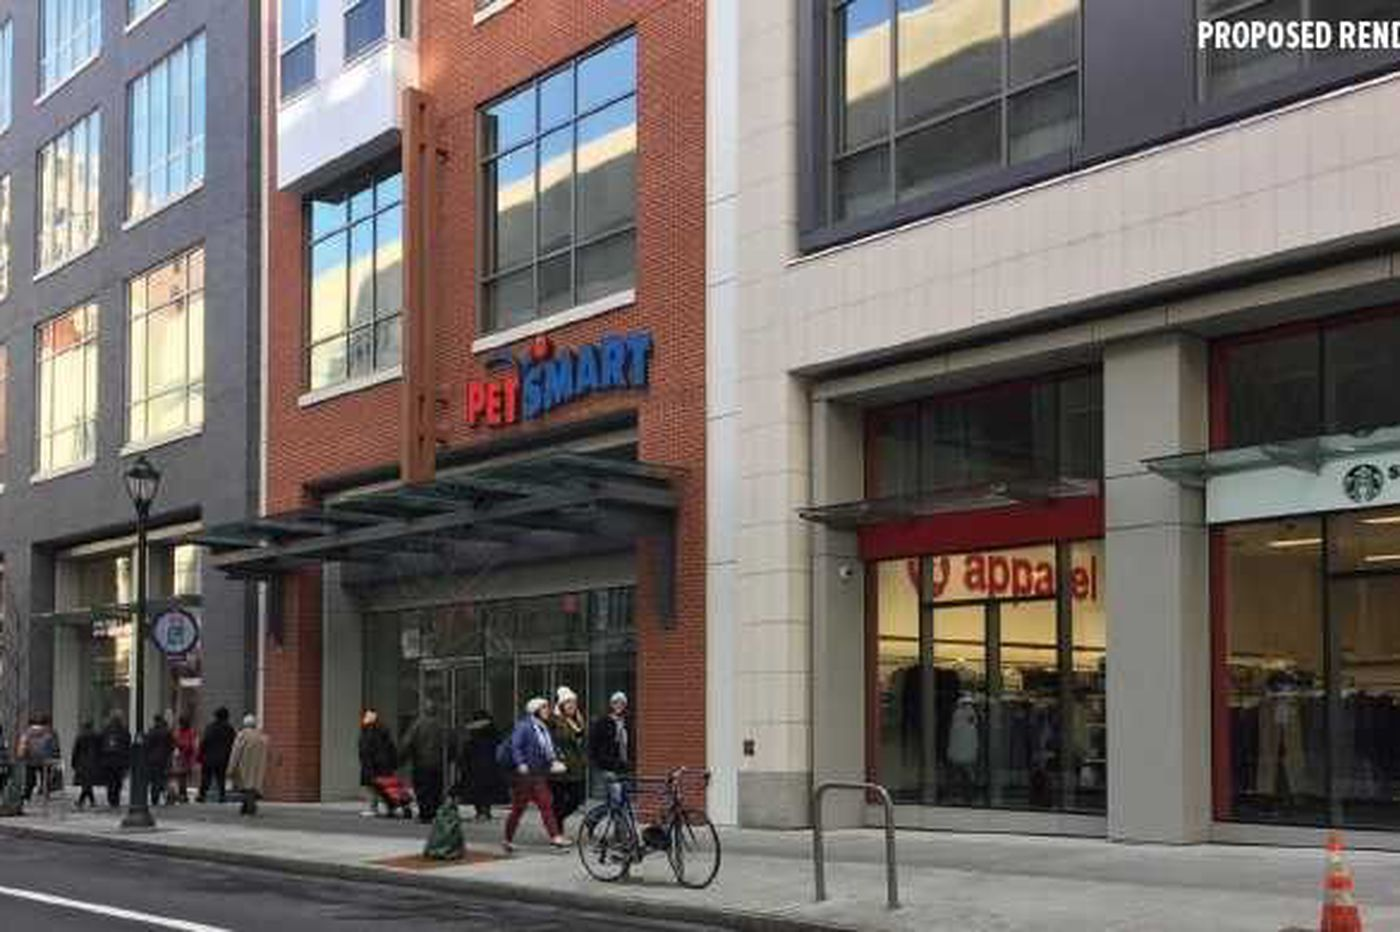 Fido's dream: PetSmart to open two stores in Philly